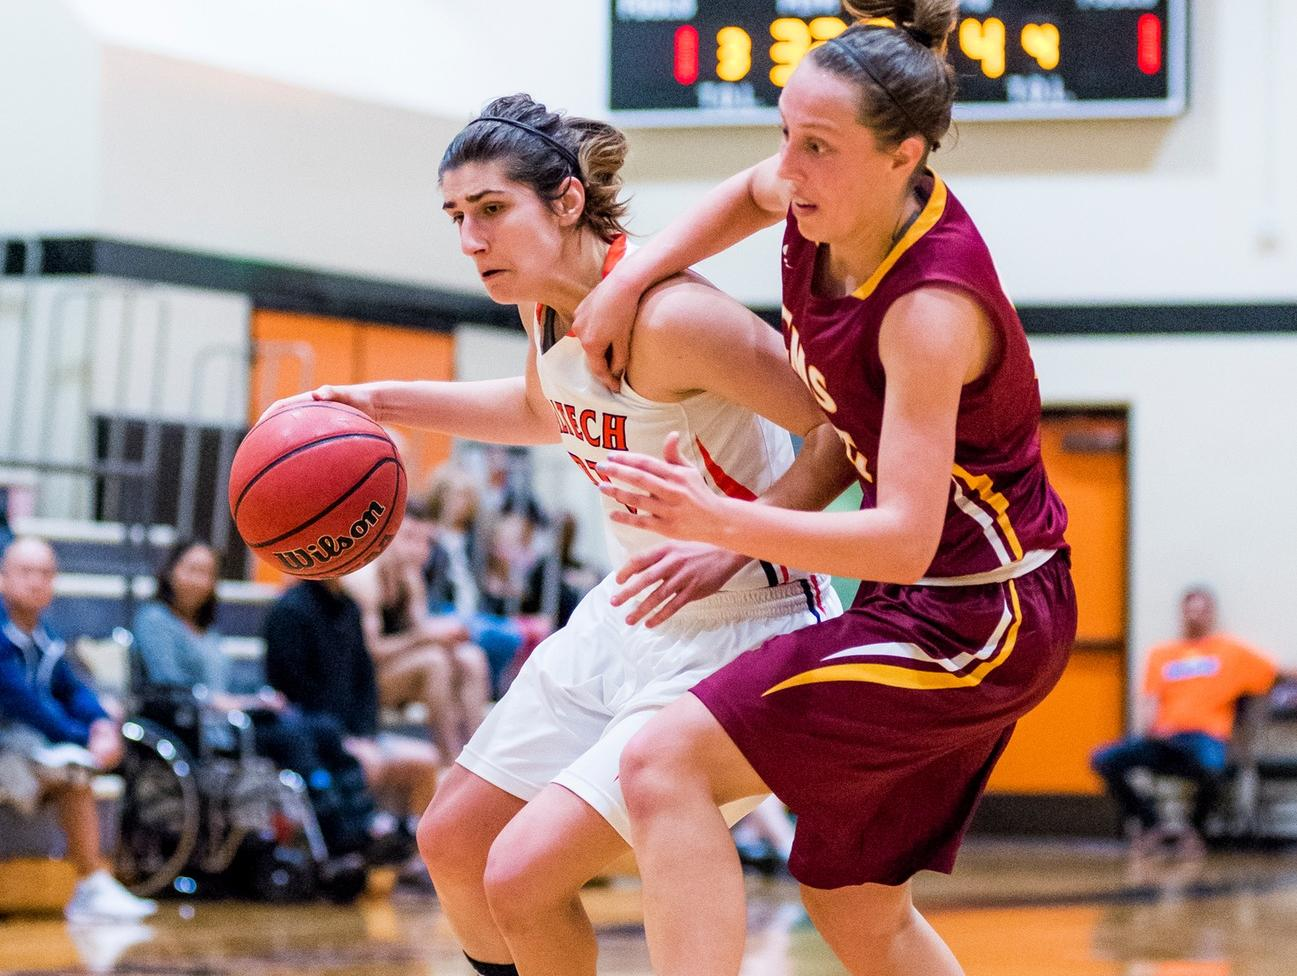 D'Costa Dominant as Caltech Handles La Verne